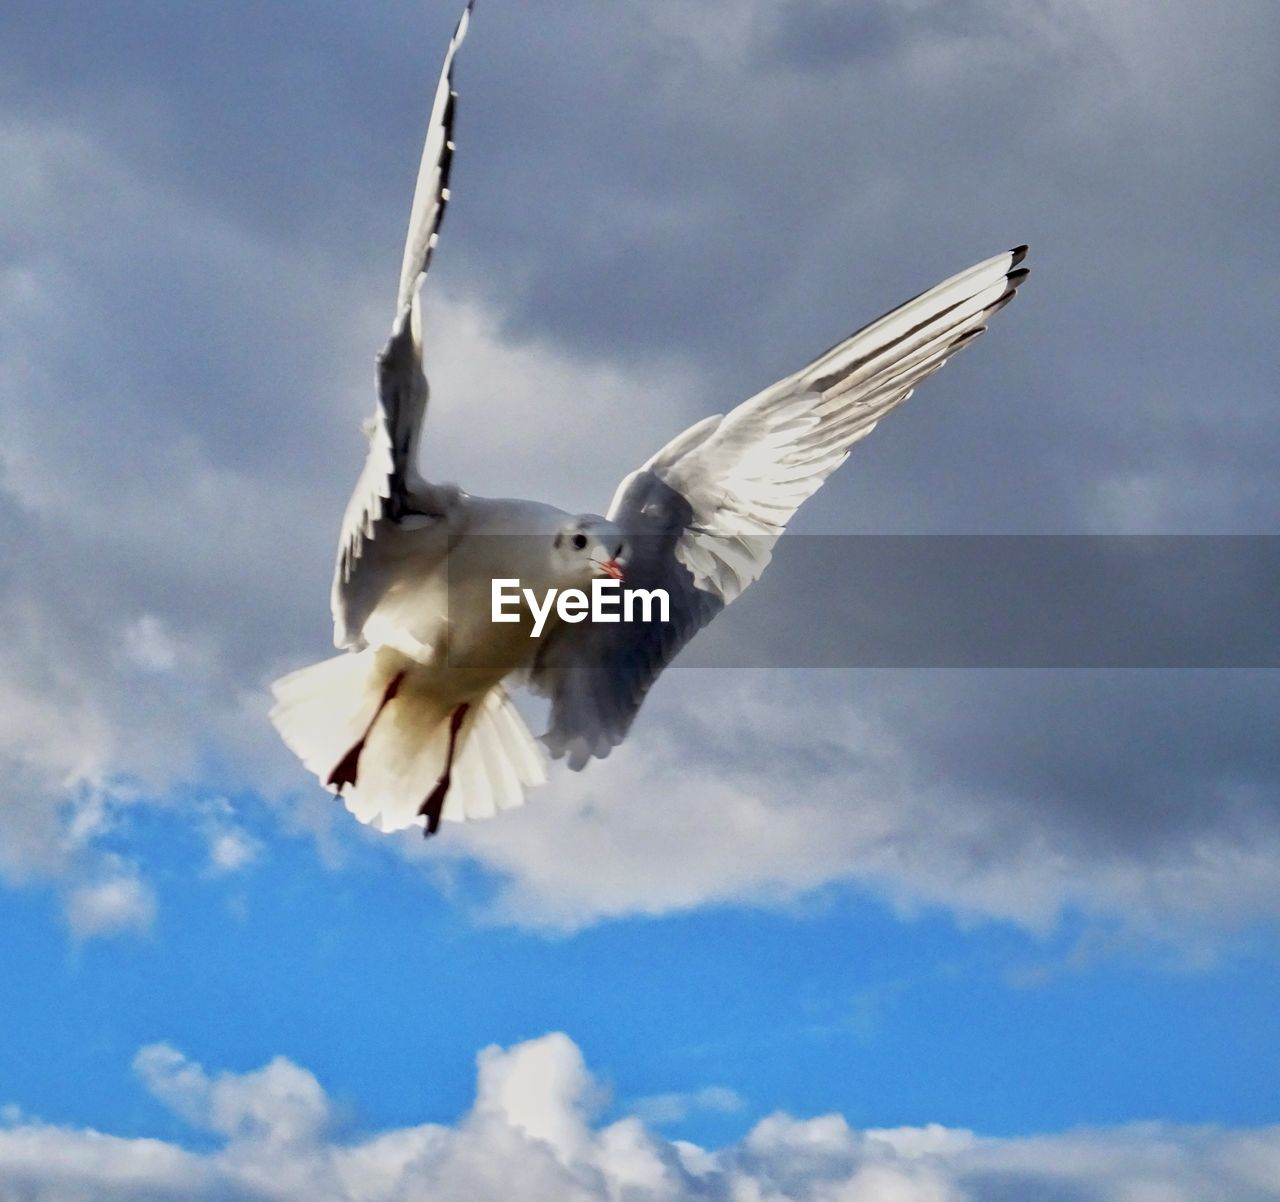 flying, spread wings, sky, bird, cloud - sky, one animal, low angle view, animal themes, mid-air, animals in the wild, seagull, day, outdoors, no people, nature, animal wildlife, motion, sea bird, beauty in nature